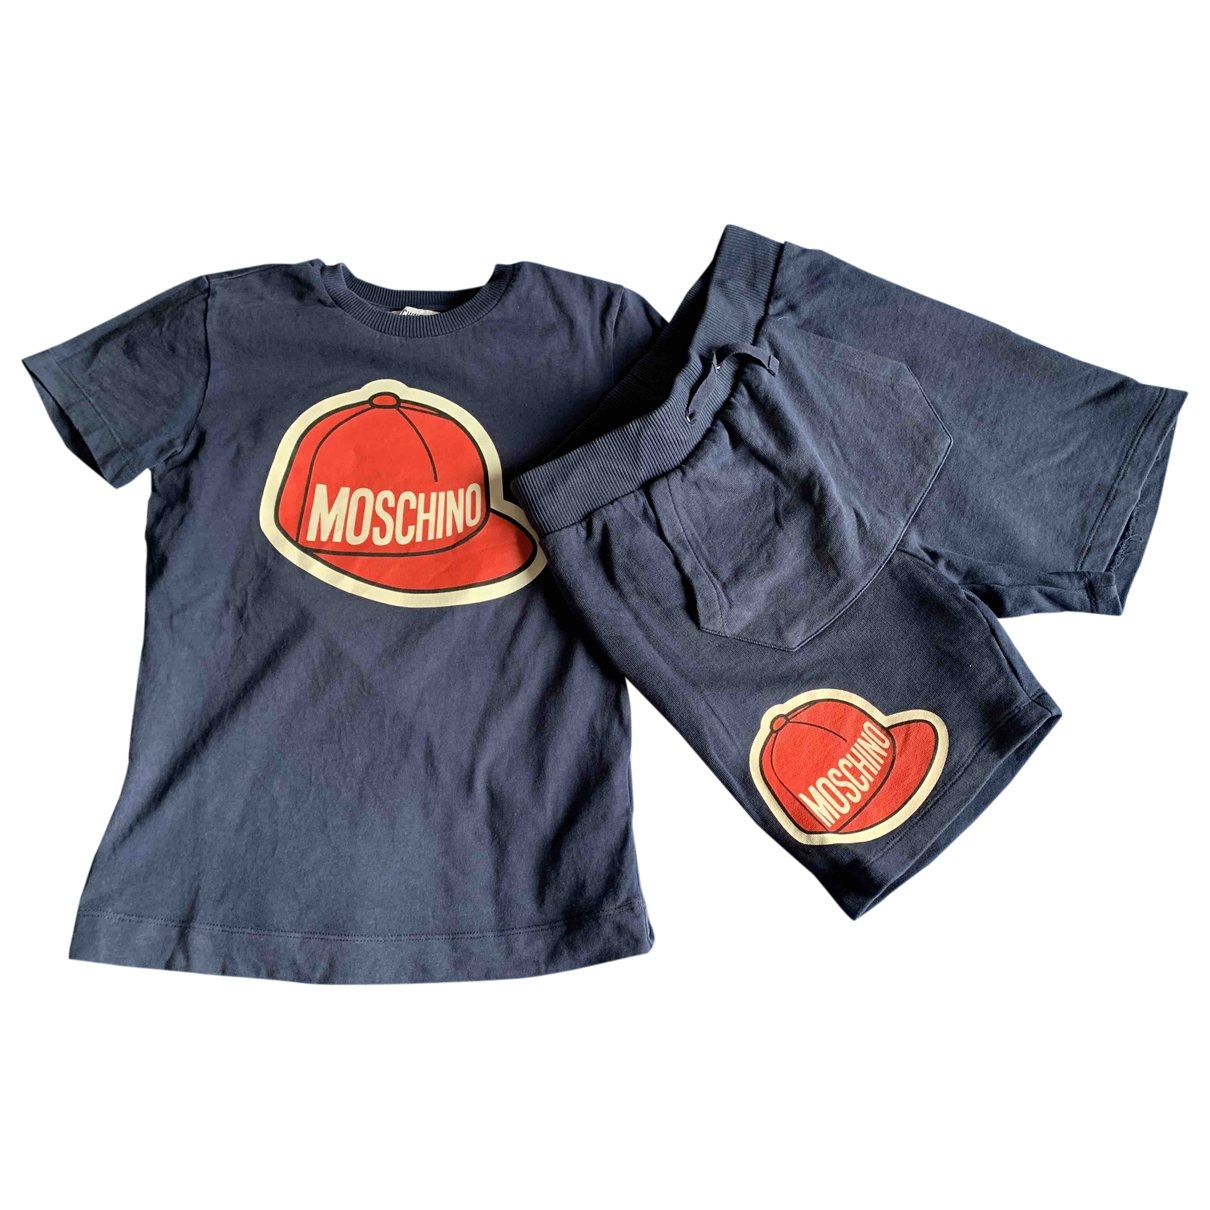 Moschino \N Blue Cotton Outfits for Kids 8 years - up to 128cm FR